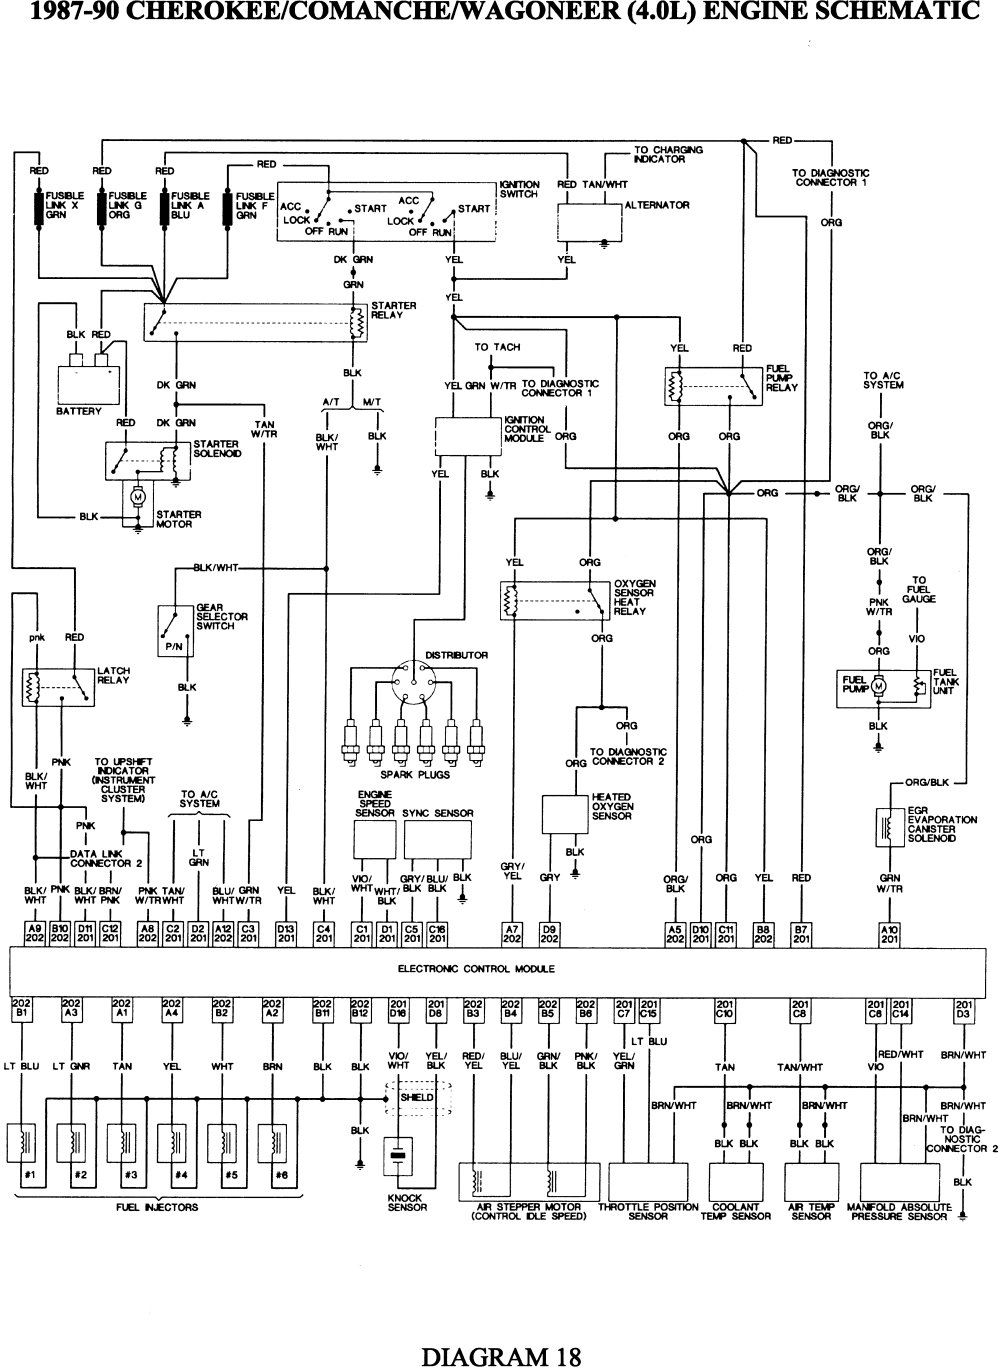 2001 jeep cherokee engine wiring diagram wiring diagram name wiring diagram for jeep cherokee wiring diagram for jeep cherokee [ 1000 x 1369 Pixel ]